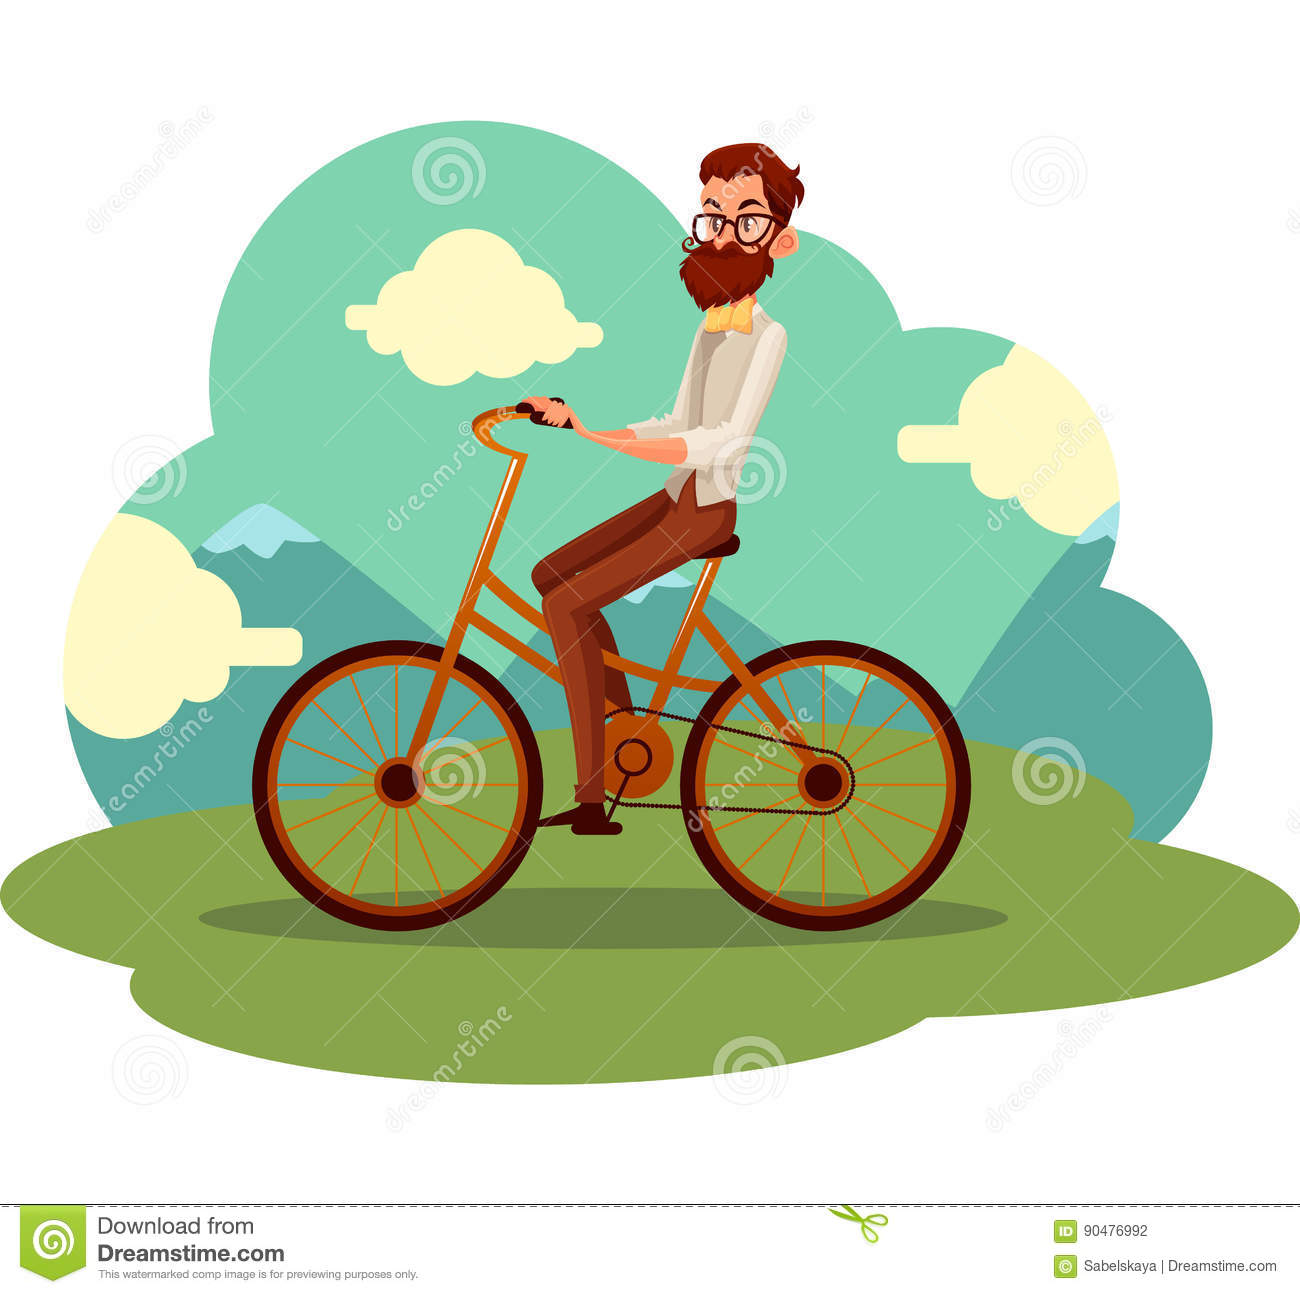 5dc36eabe1f9 Bearded man in vest and bow tie riding a bicycle, cycling, cartoon vector  illustration. Full length, side view portrait of bearded man, scientist  riding a ...